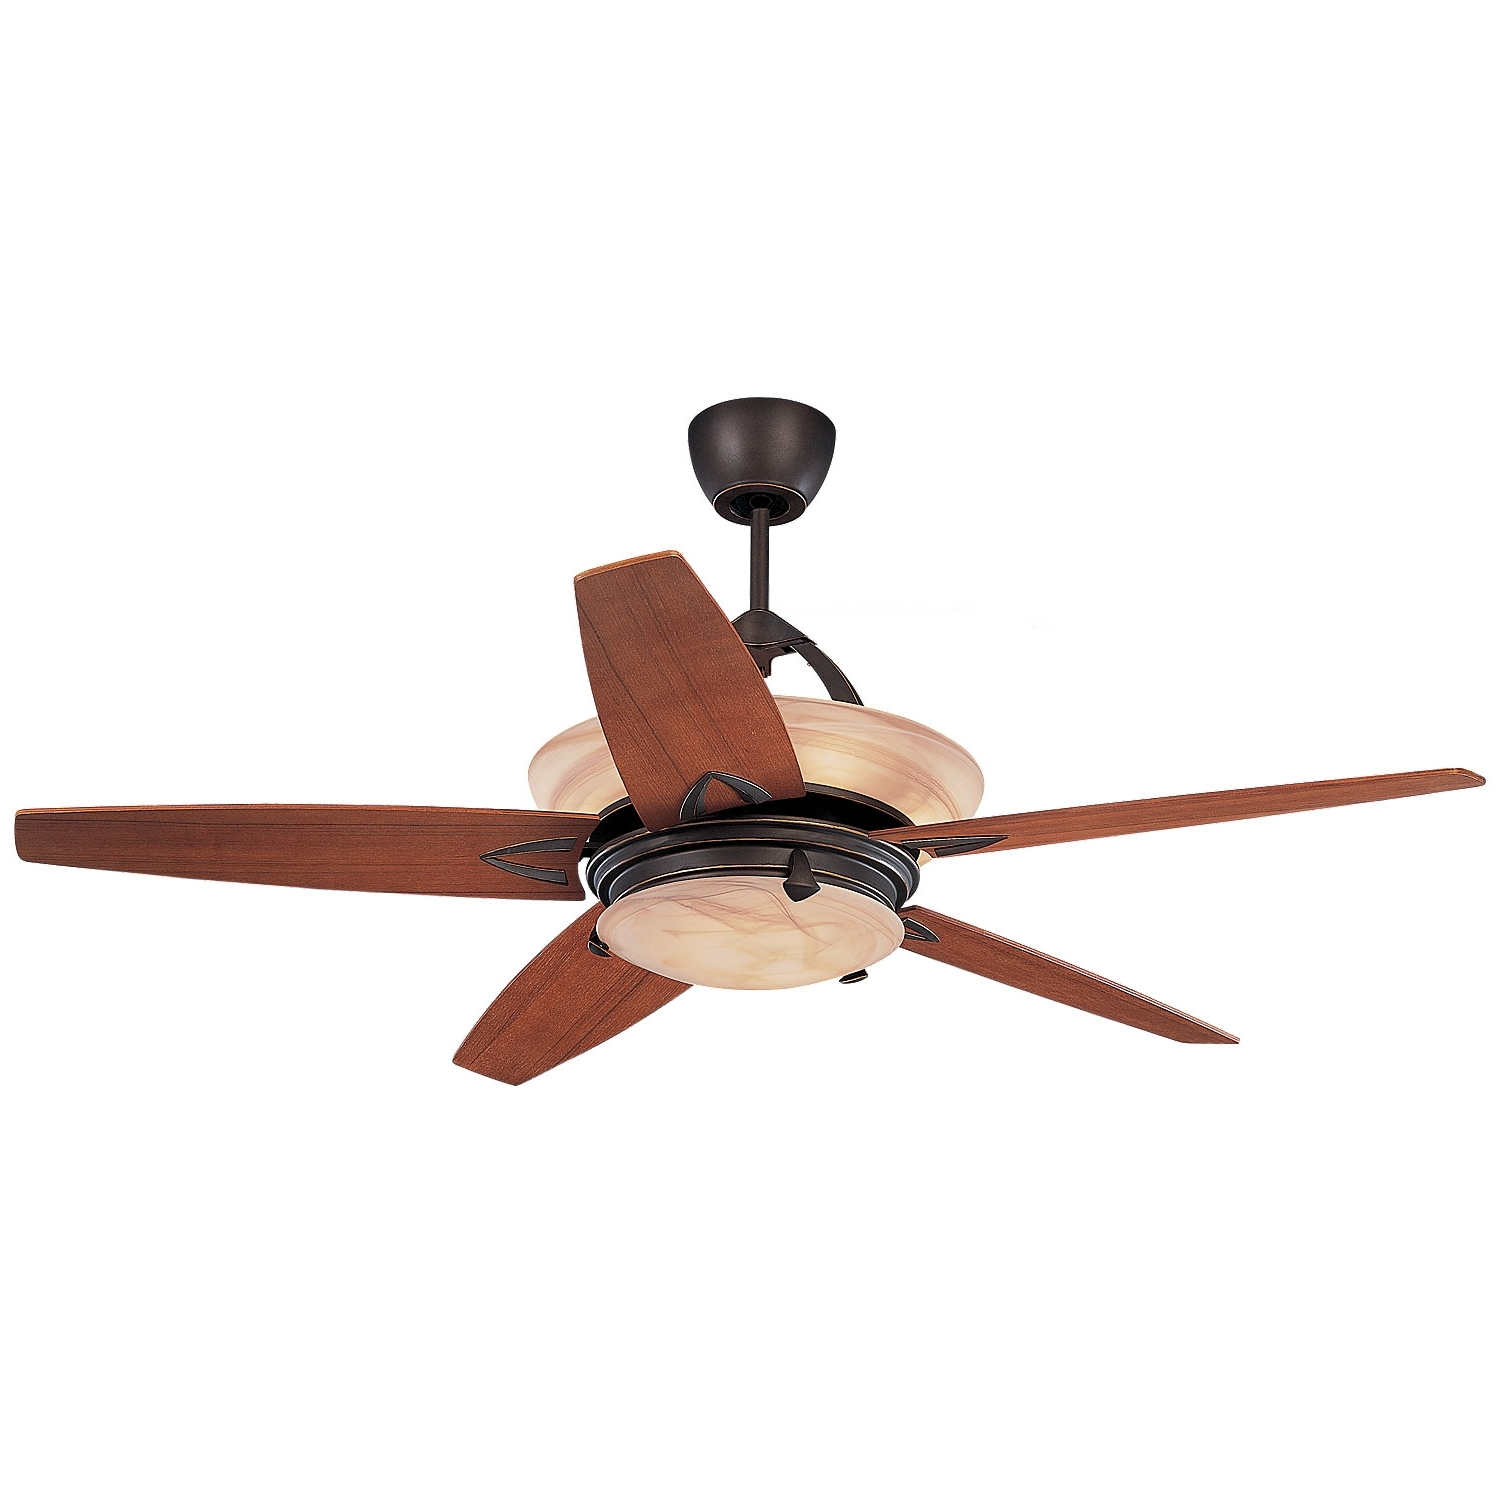 Outdoor Ceiling Fans With Uplights In Latest Monte Carlo Arch Roman Bronze 60 Inch Ceiling Fan With Remote (Gallery 16 of 20)